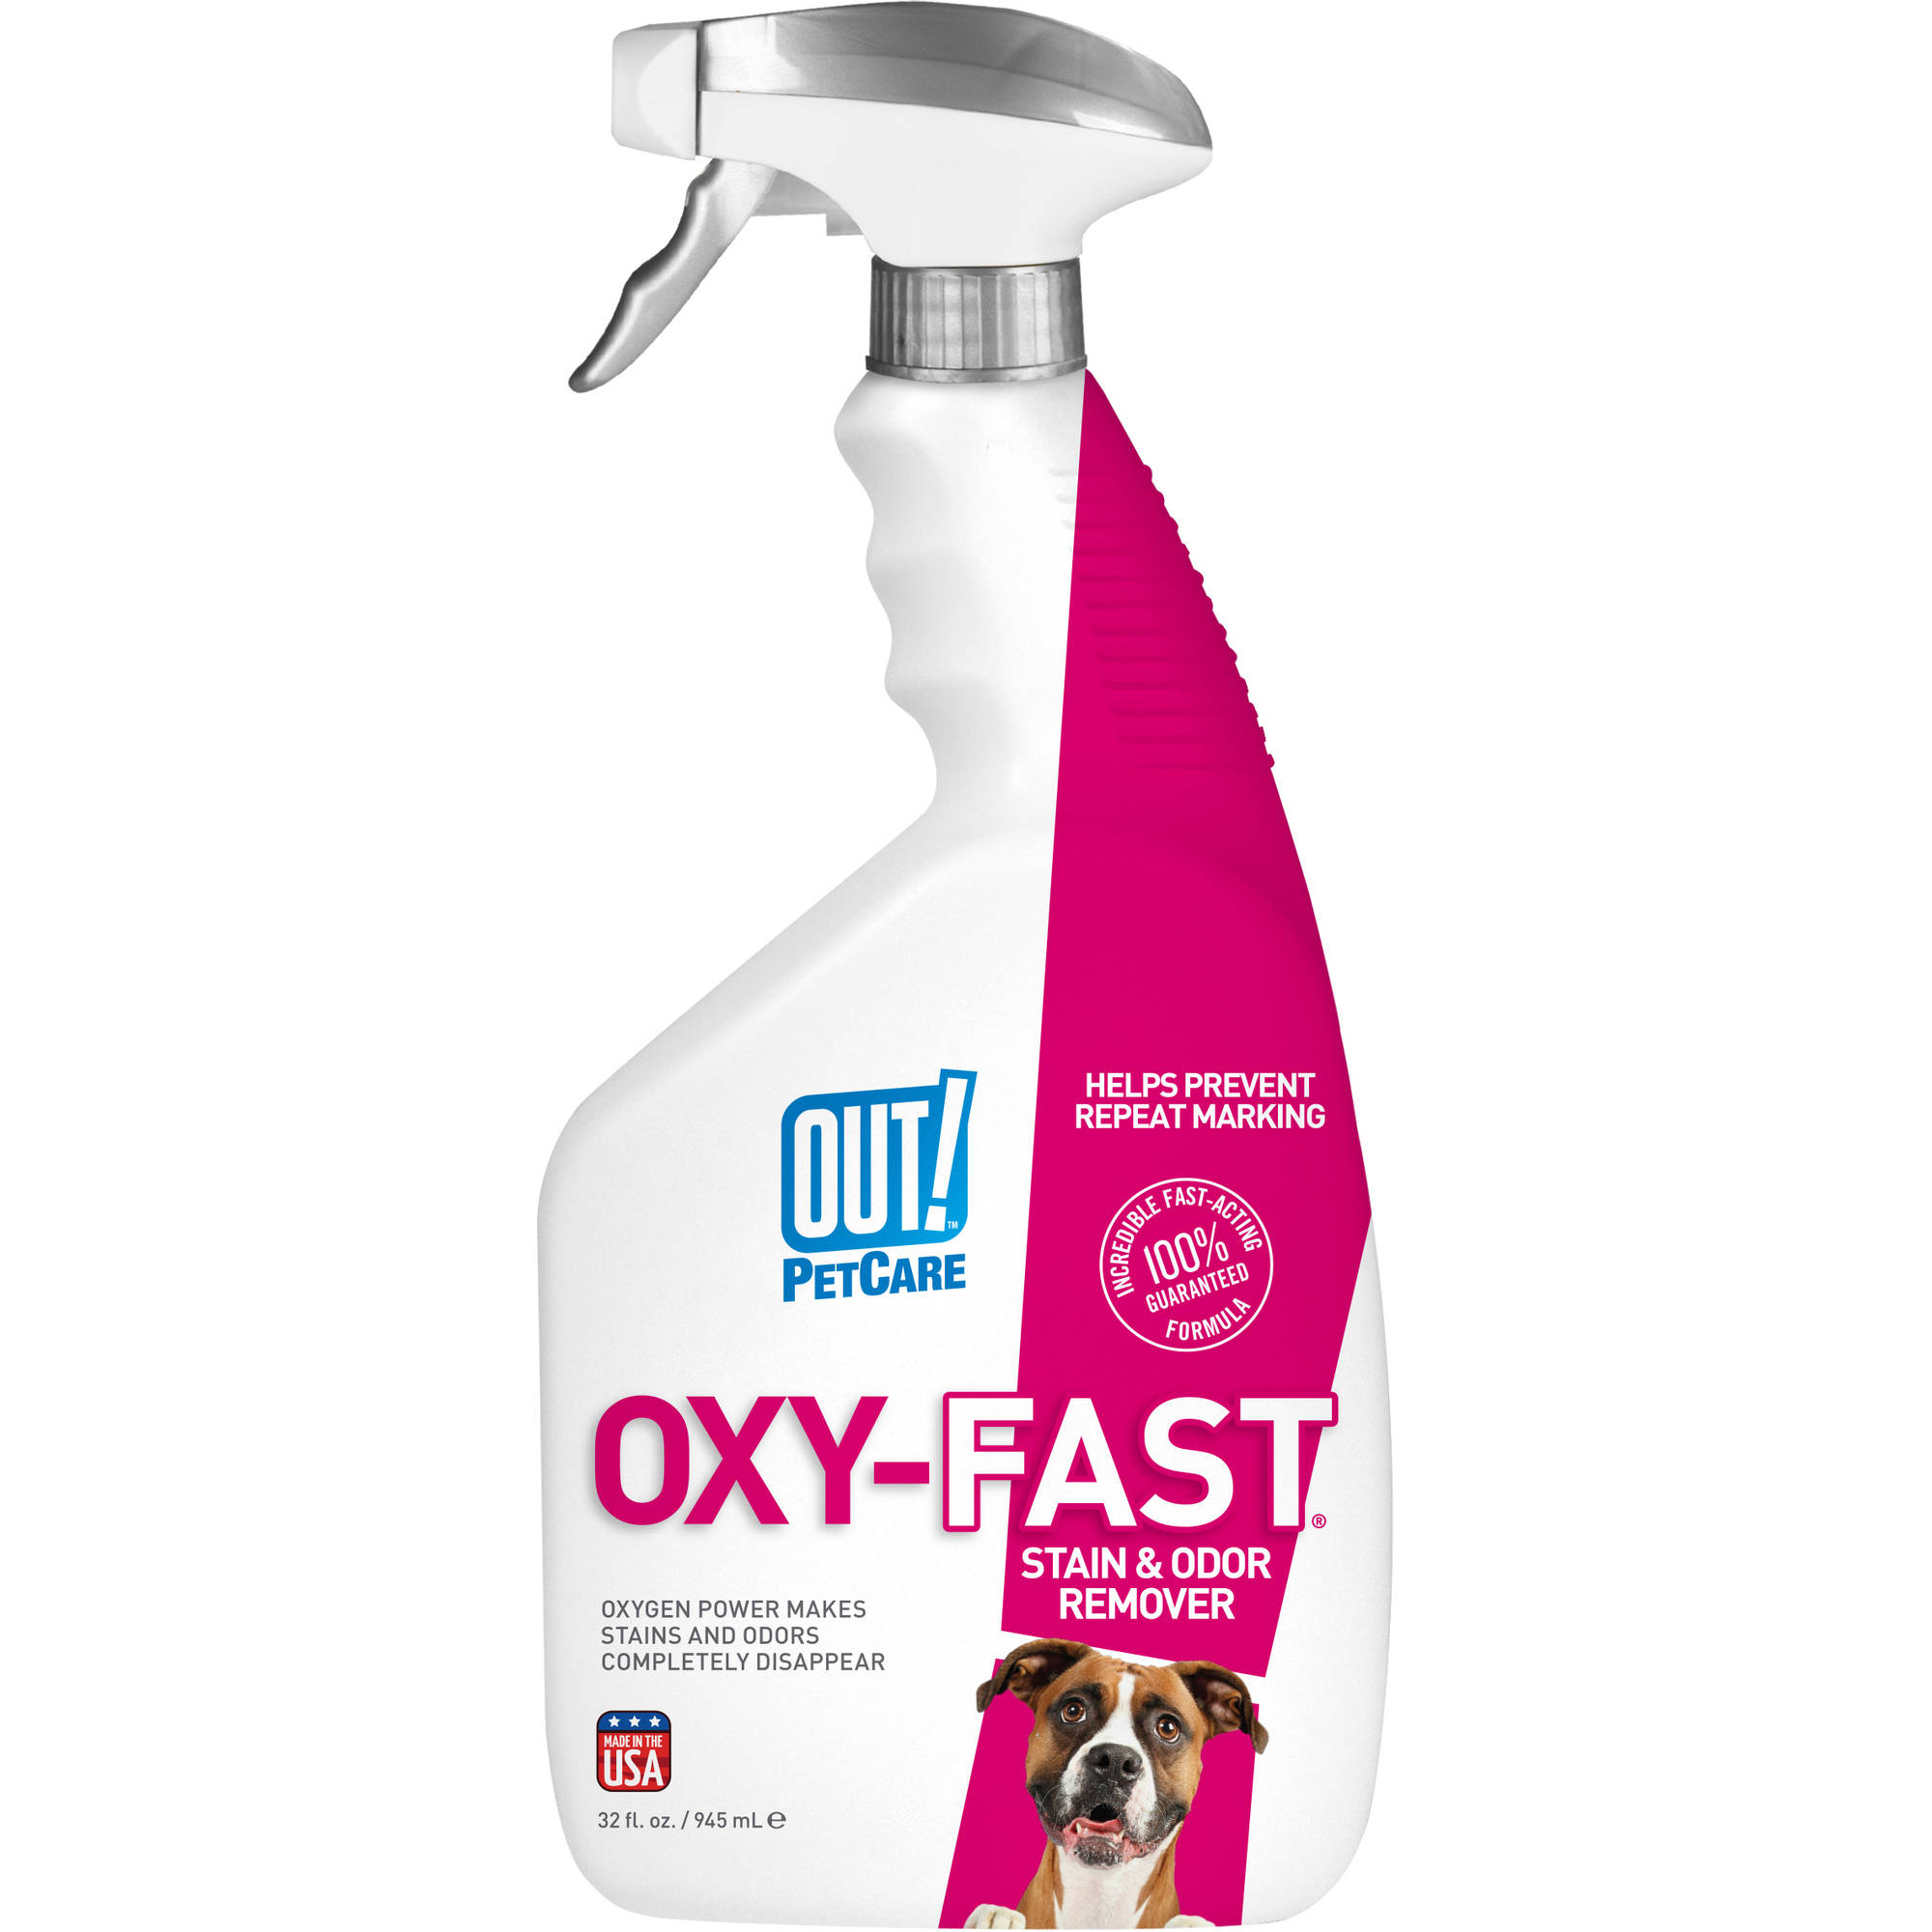 OUT! Oxy Stain & Odor Remover Spray, 32 oz